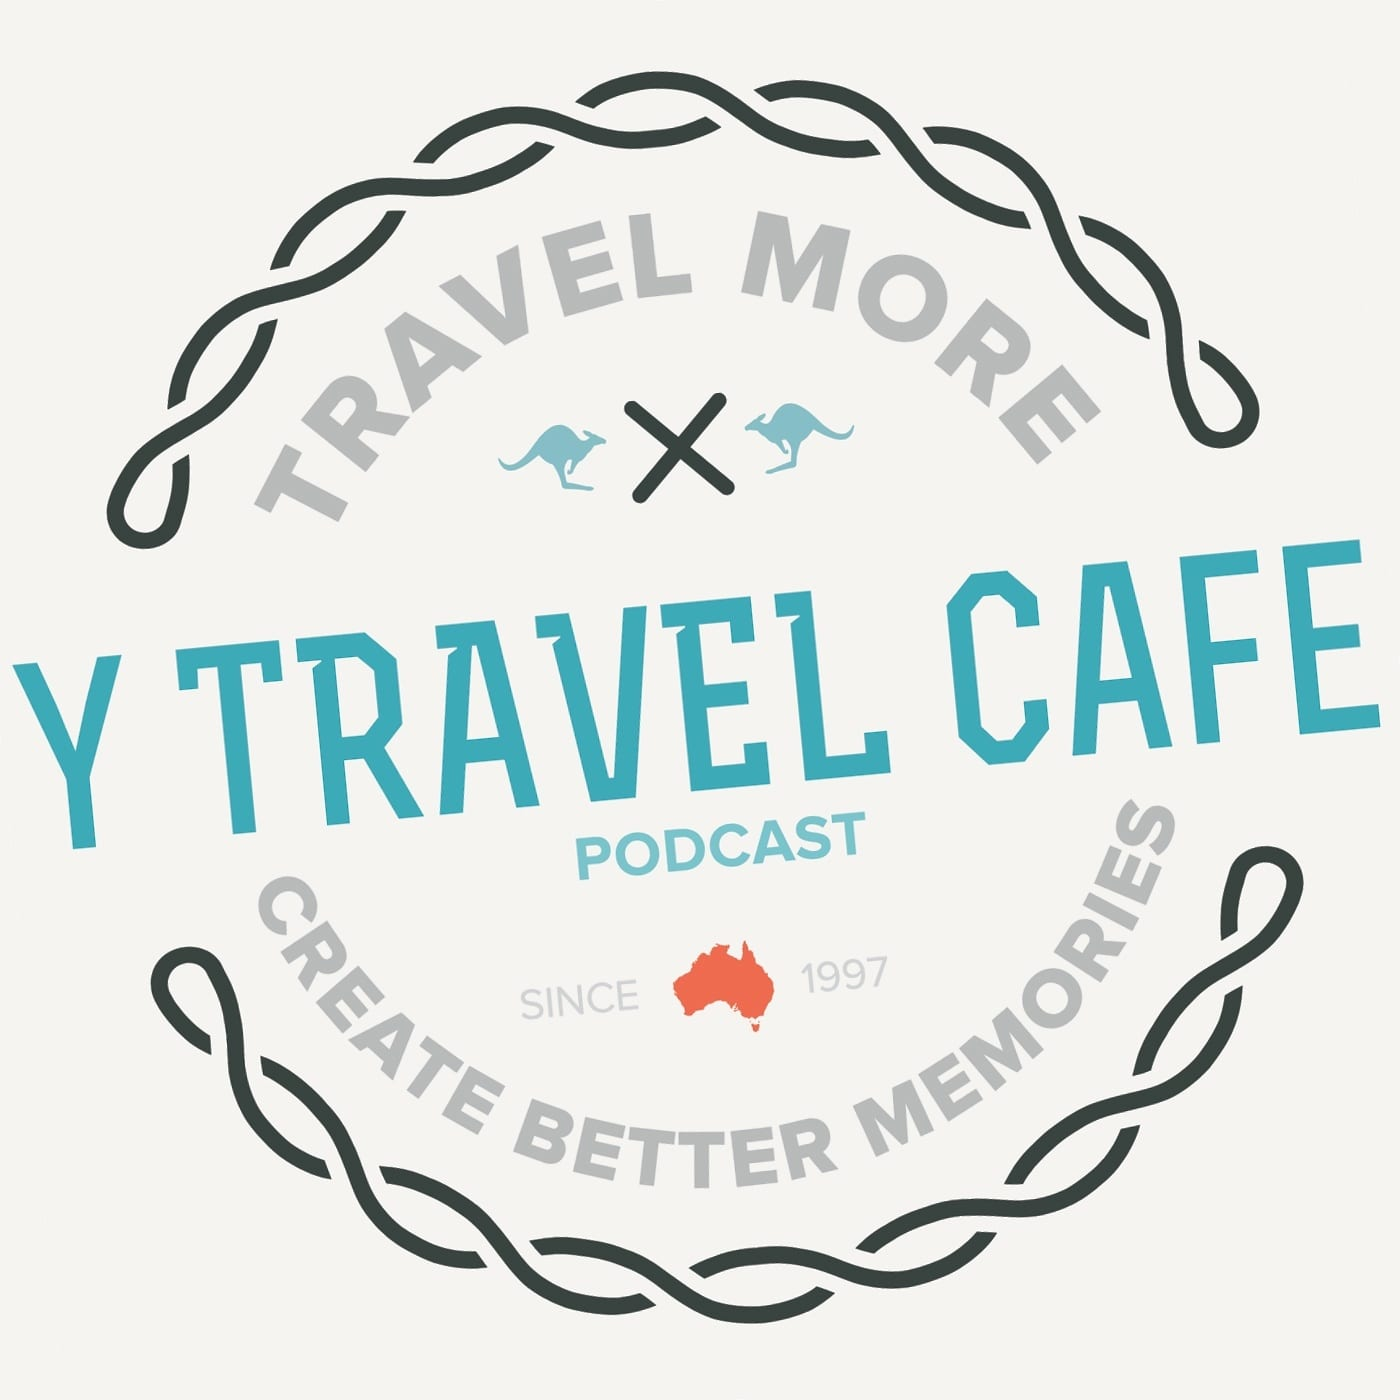 Travel Podcast - Travel inspiration and tips to help you travel more